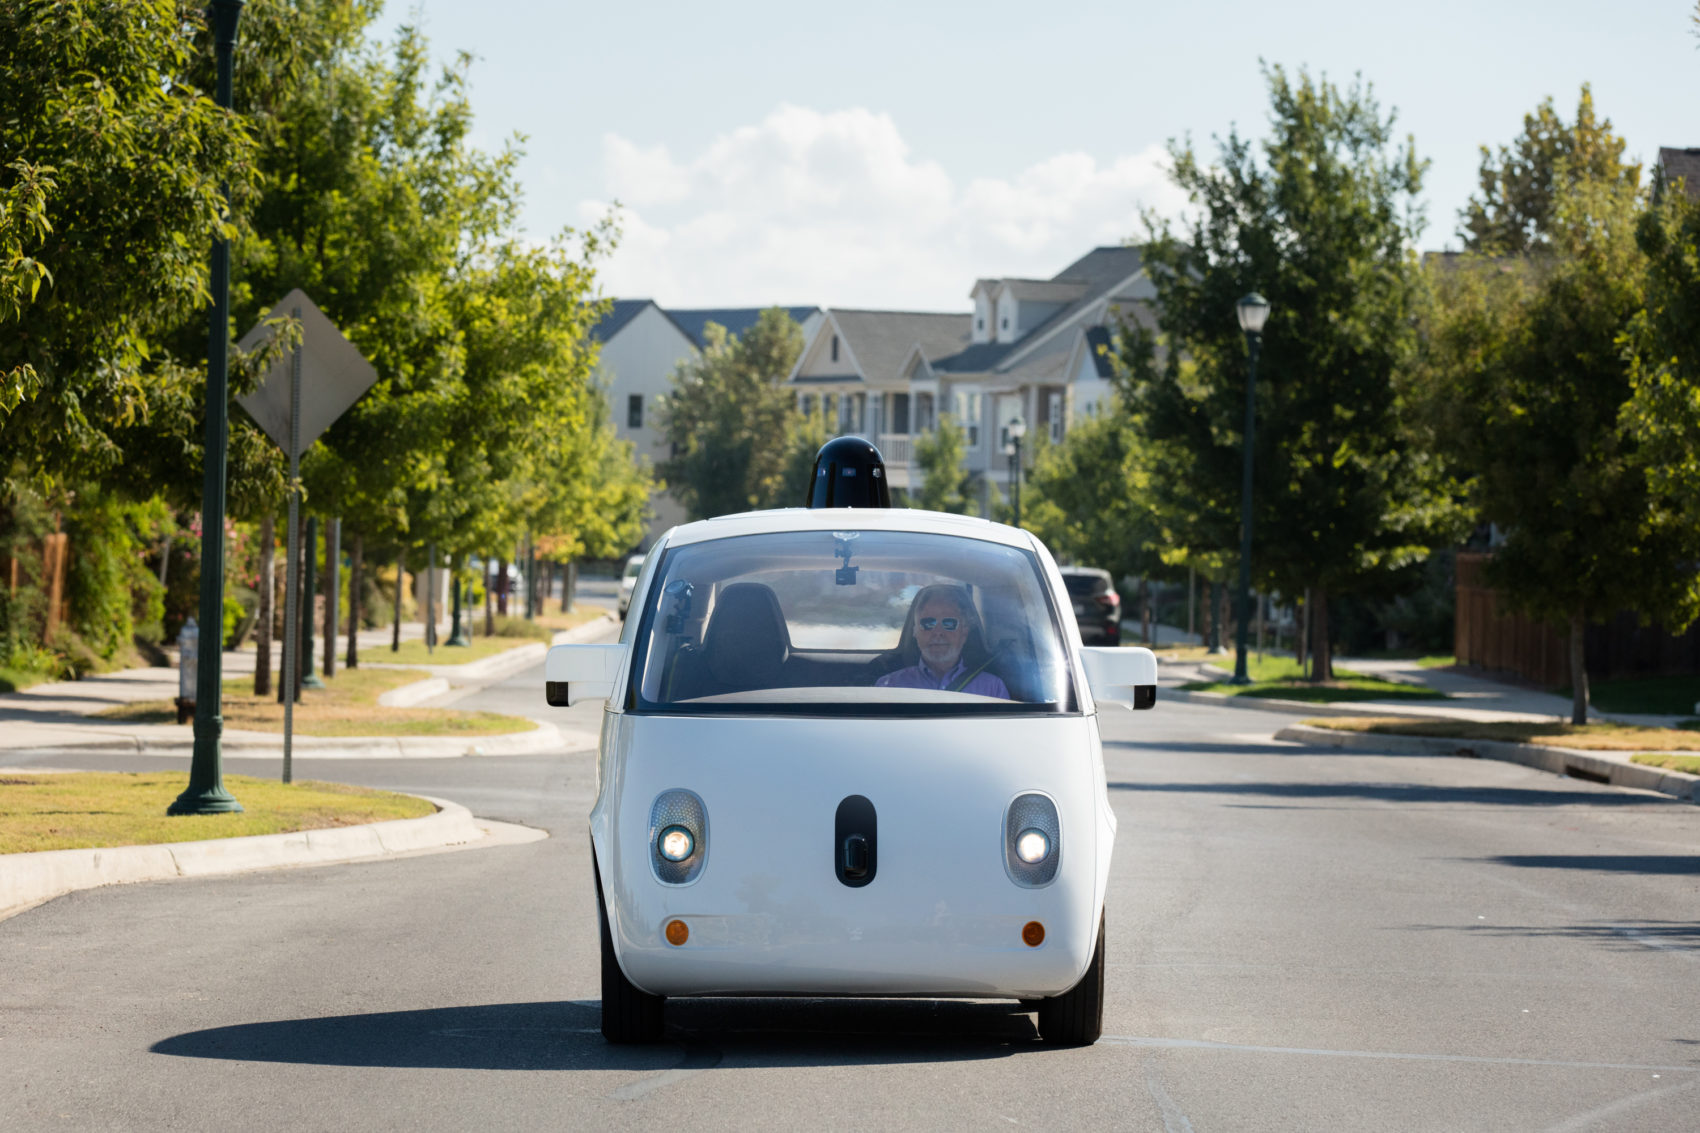 The world's first fully self-driving ride on public roads. (Courtesy Waymo)